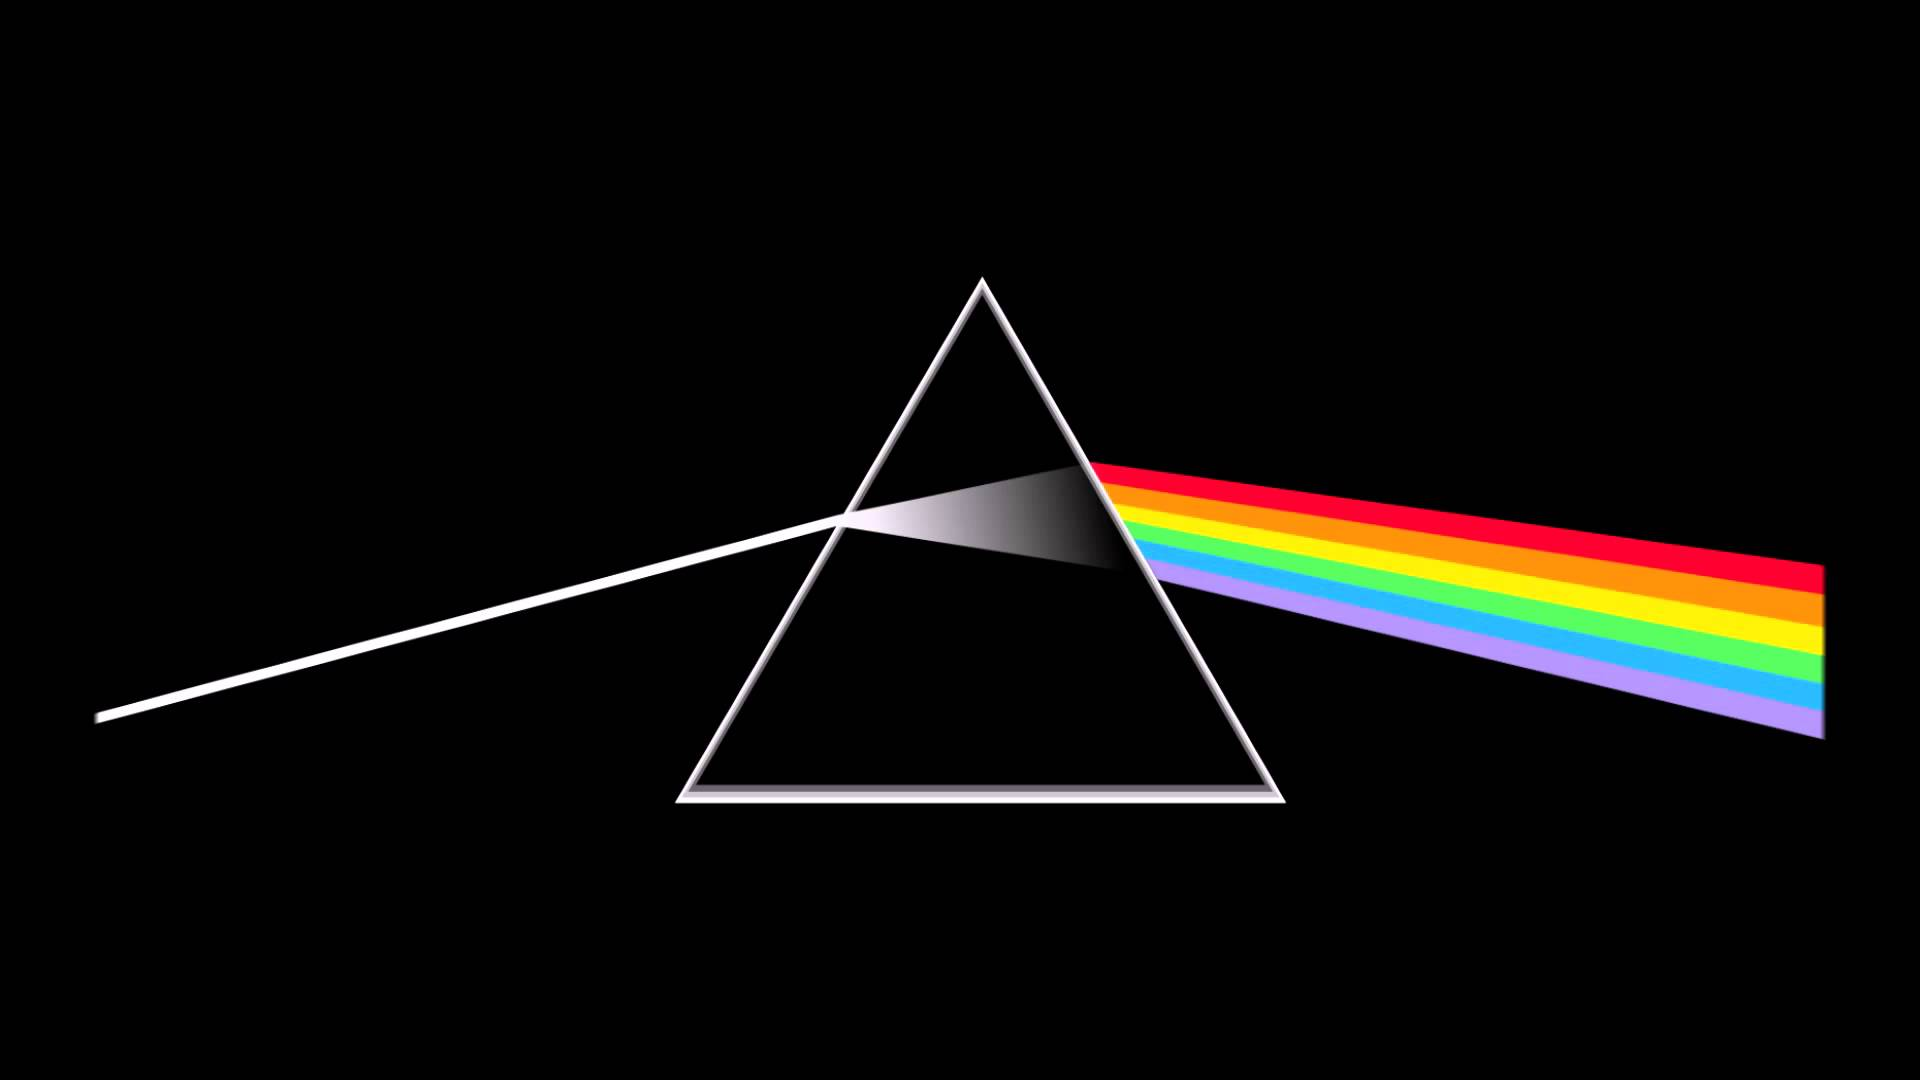 Afbeeldingsresultaat voor Dark side of the moon album